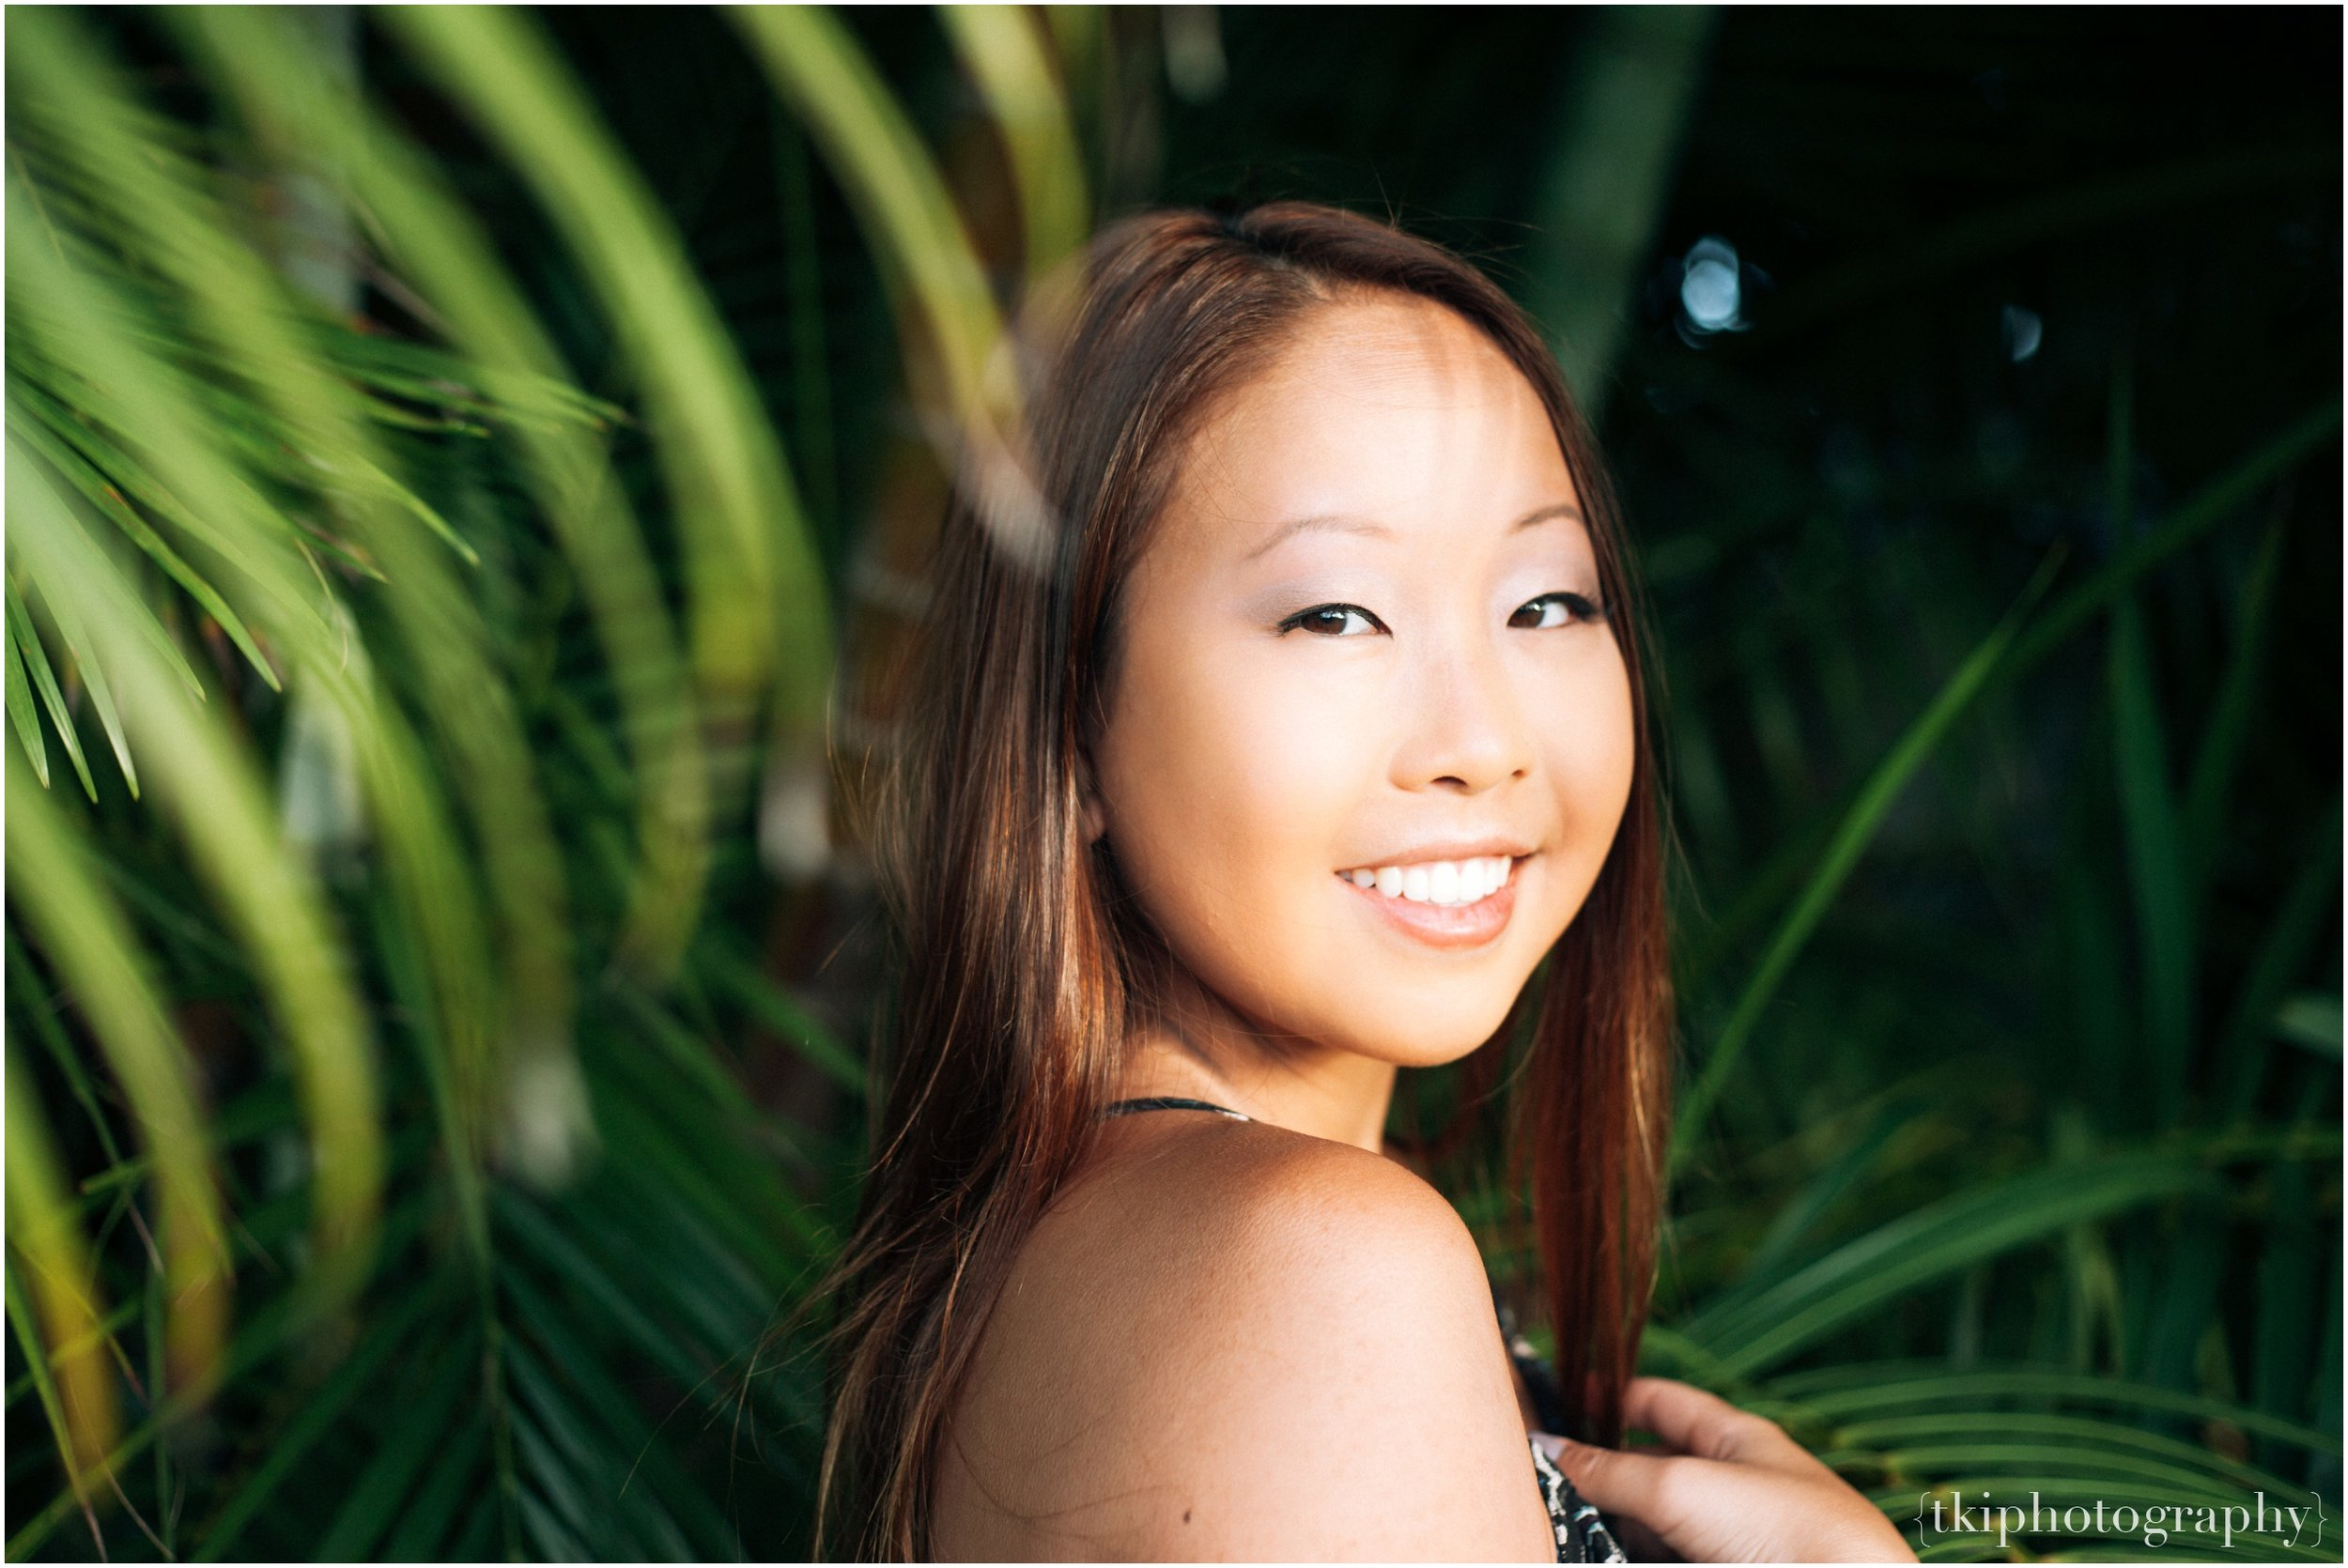 Hawaii Artistic Senior Portraits.jpg